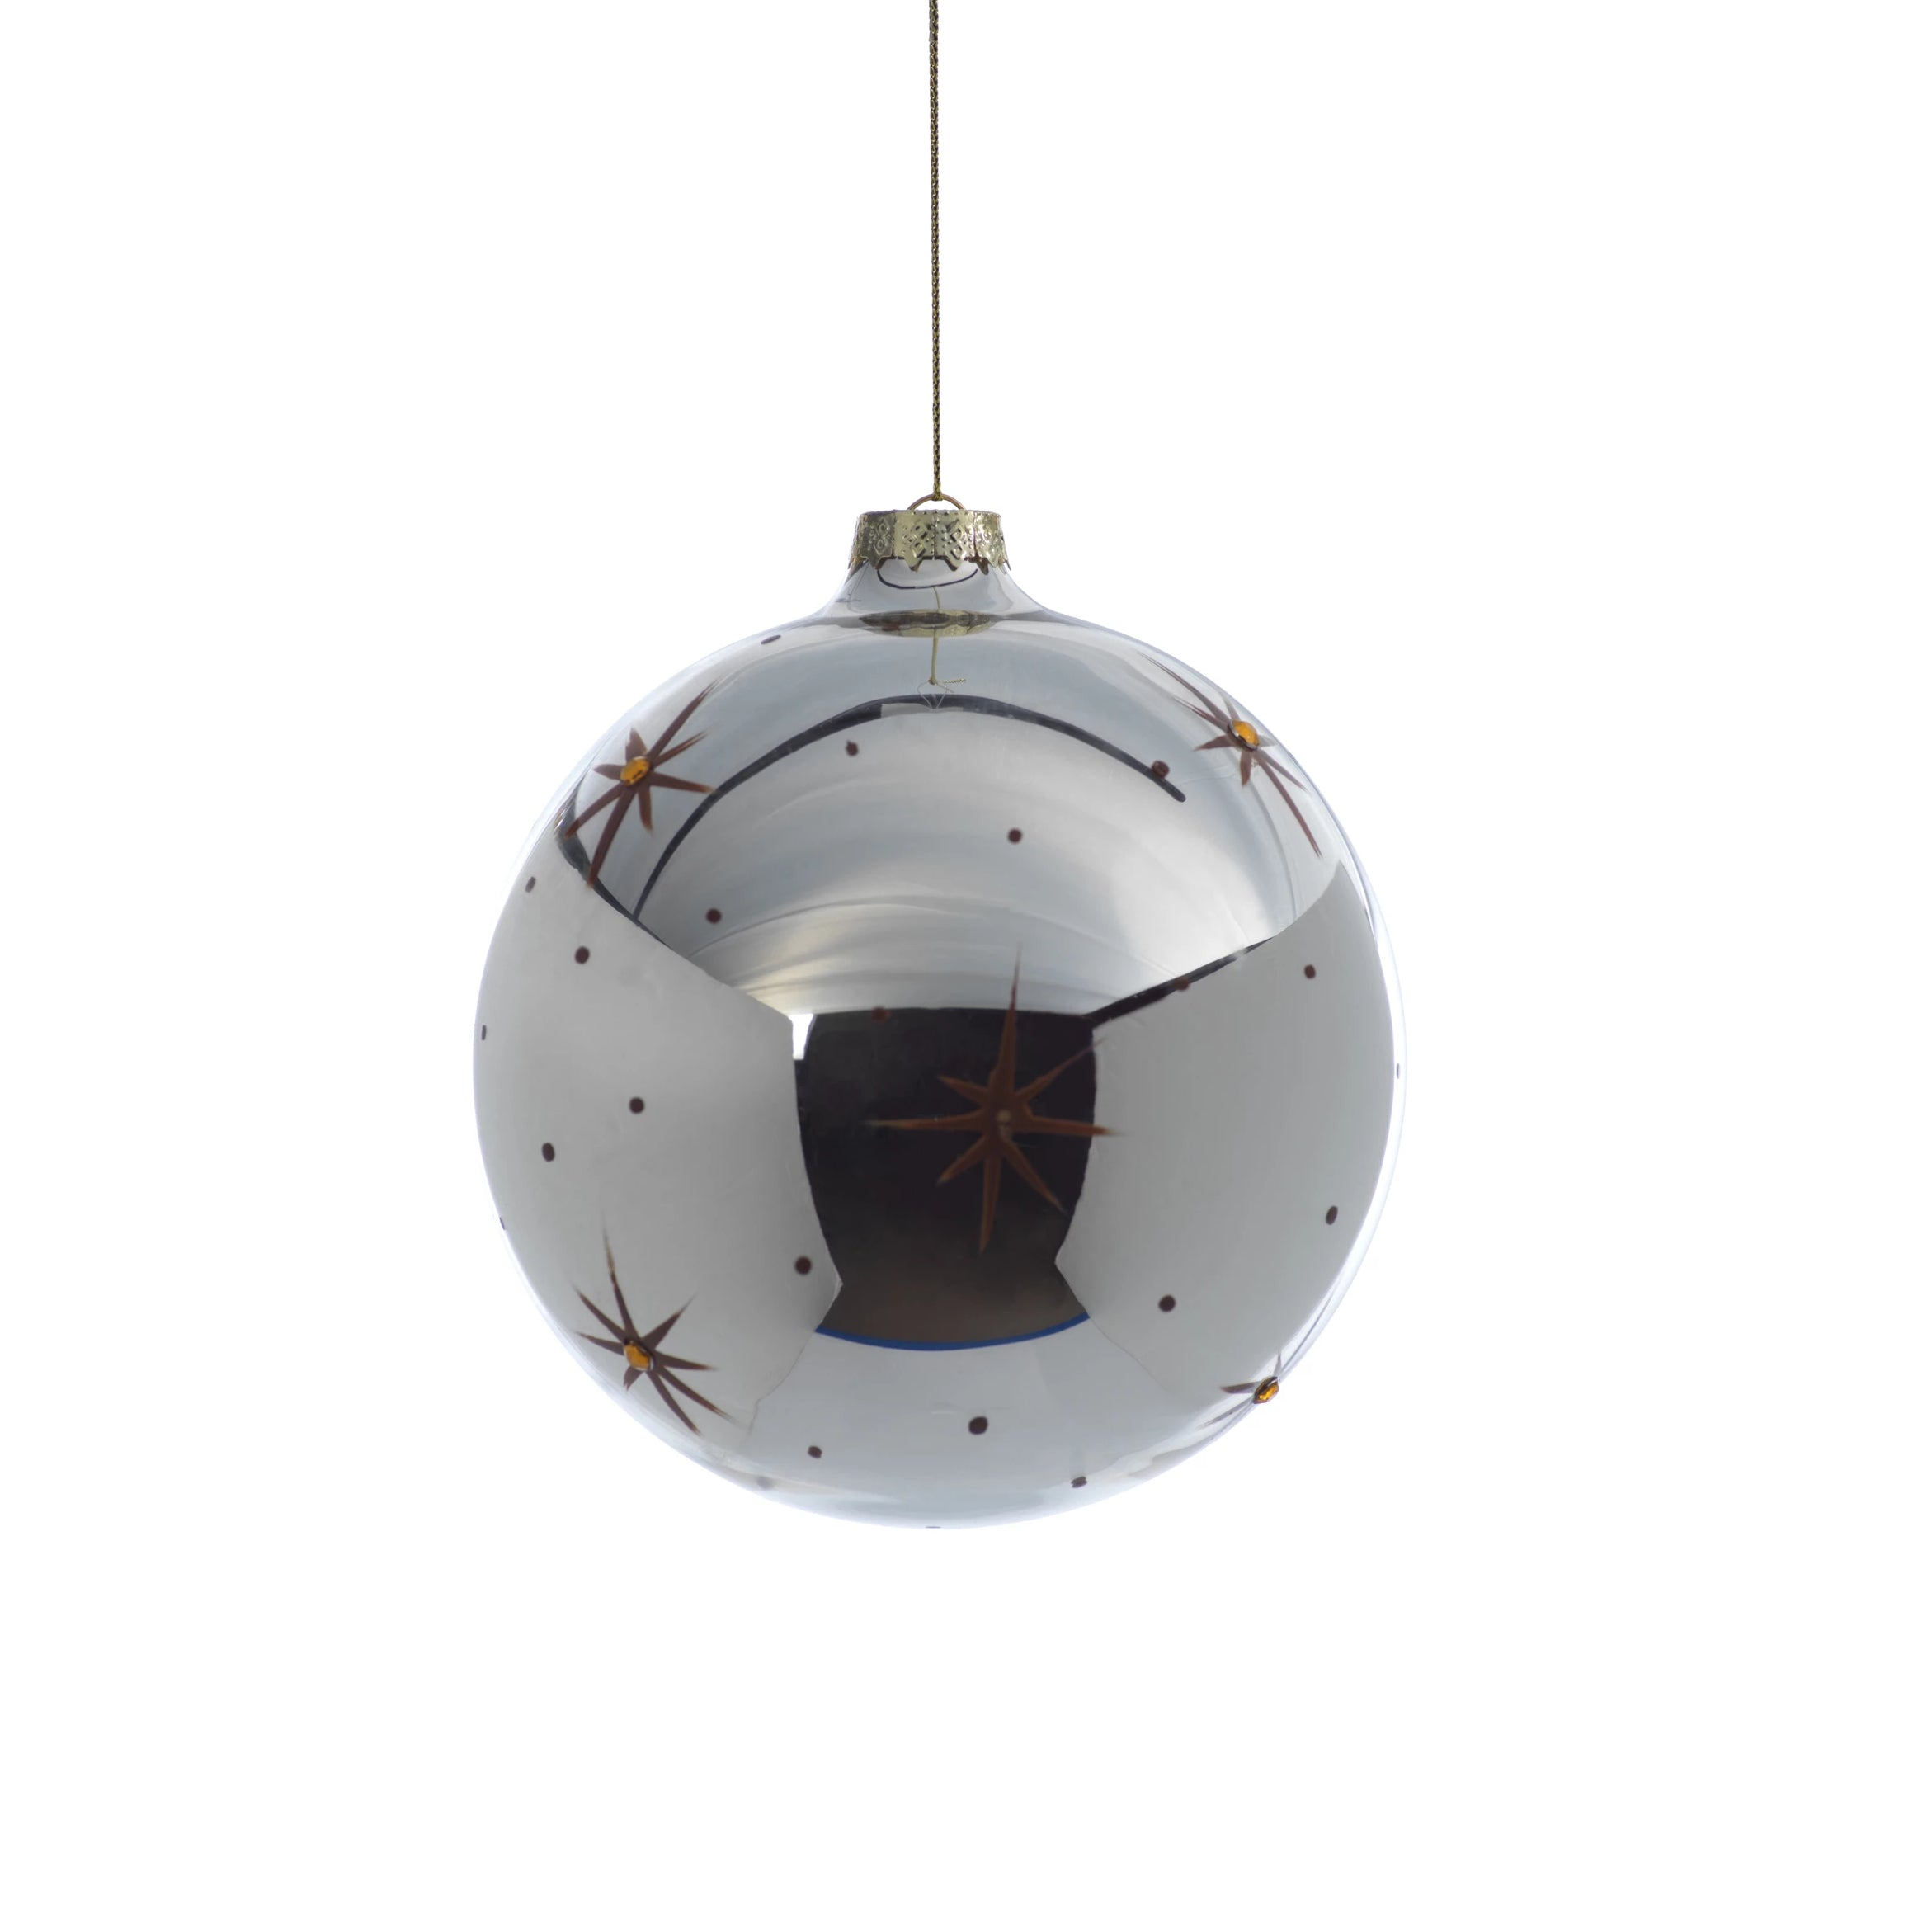 Silver Ball Ornament w/ Star Design - CARLYLE AVENUE